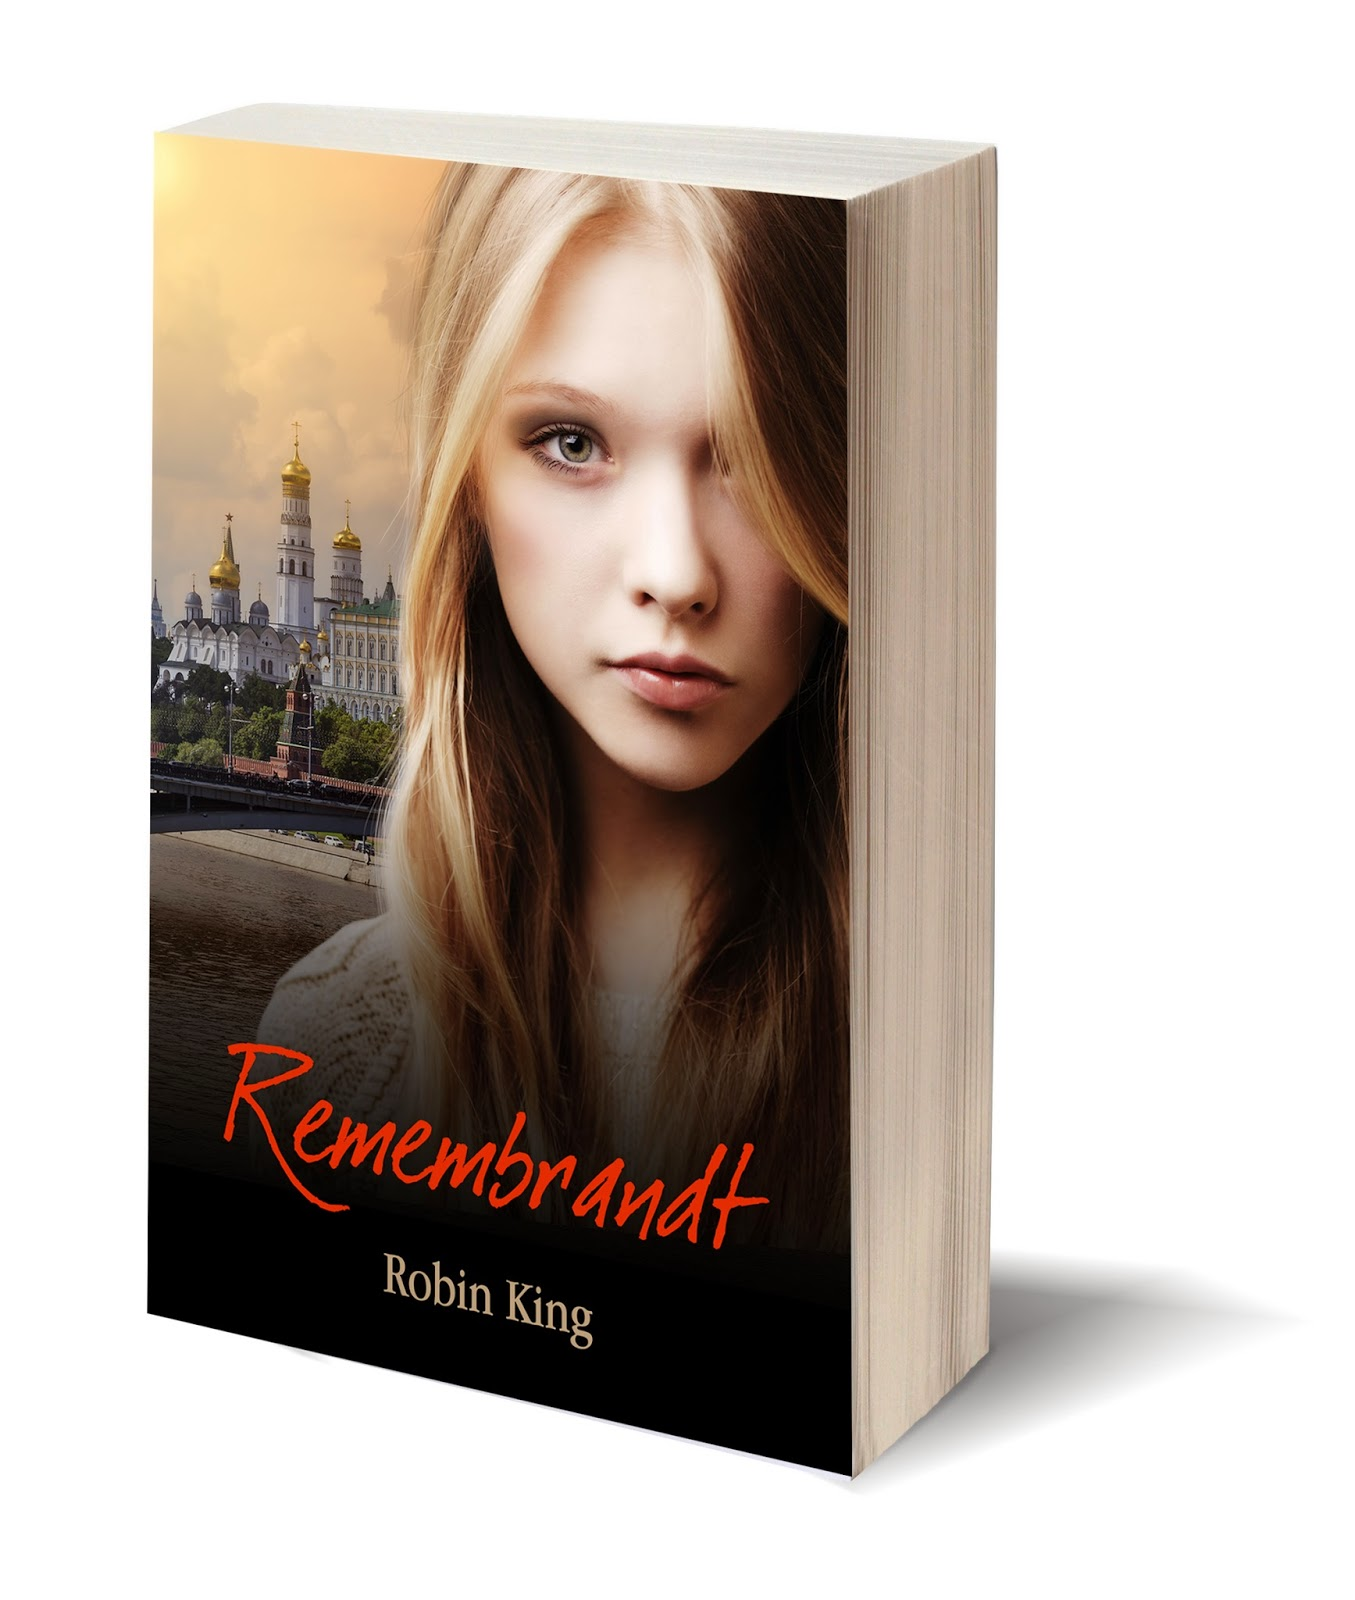 Book cover of remembrandt by robin king with blonde girl on cover with russian cityscape in the background